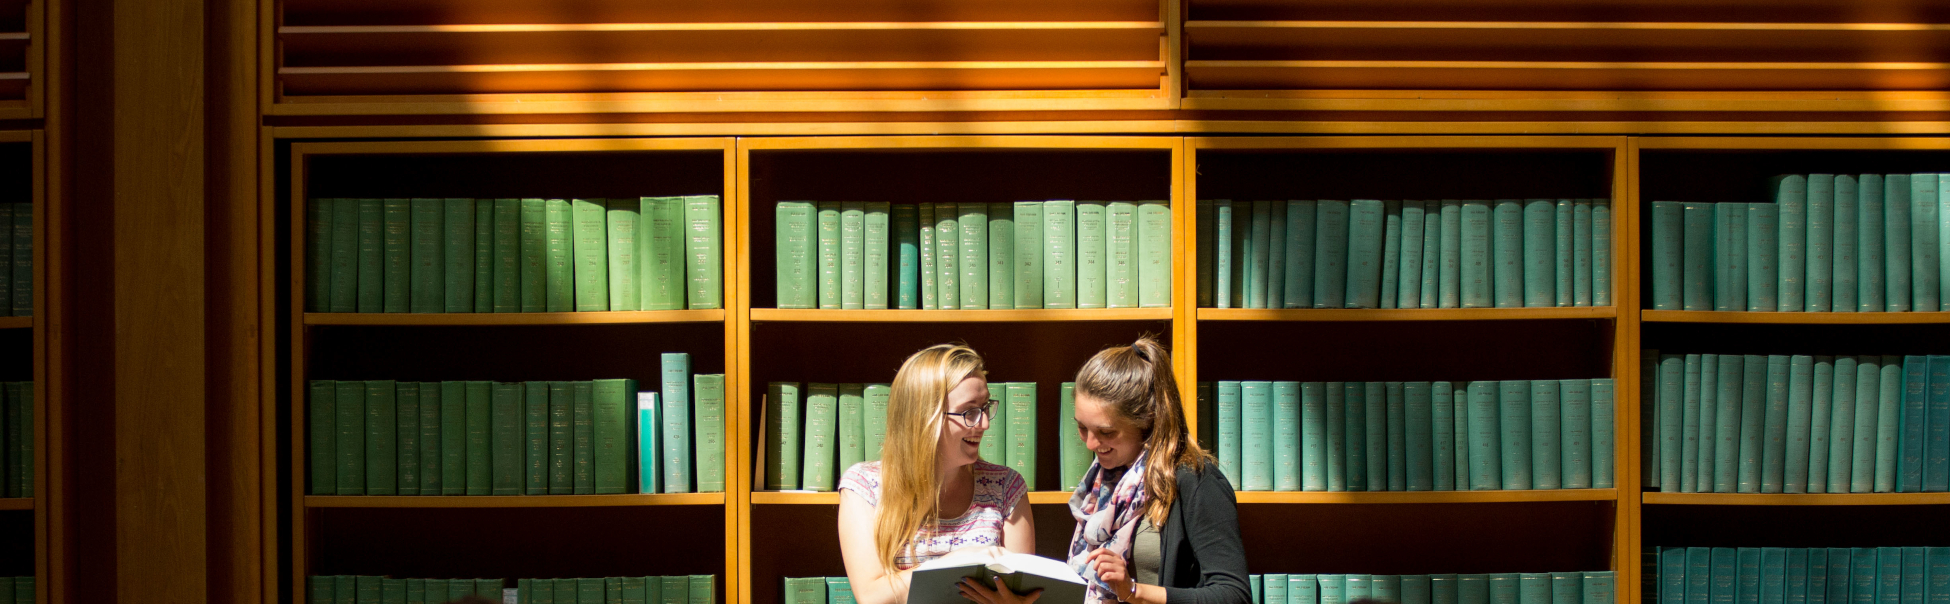 University of Limerick general views with students, Leanne Markham and Michelle Lee, Glucksman Library.